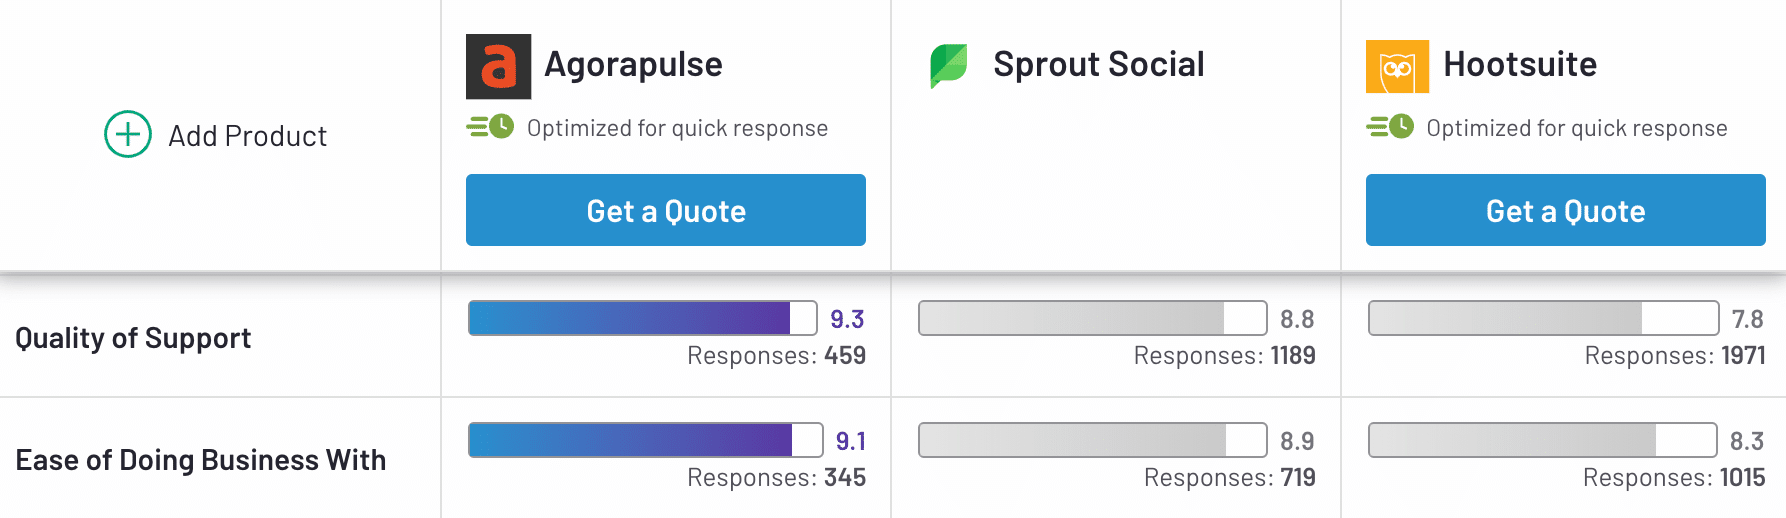 quality of support rankings on agorapulse, sprout social, and hootsuite